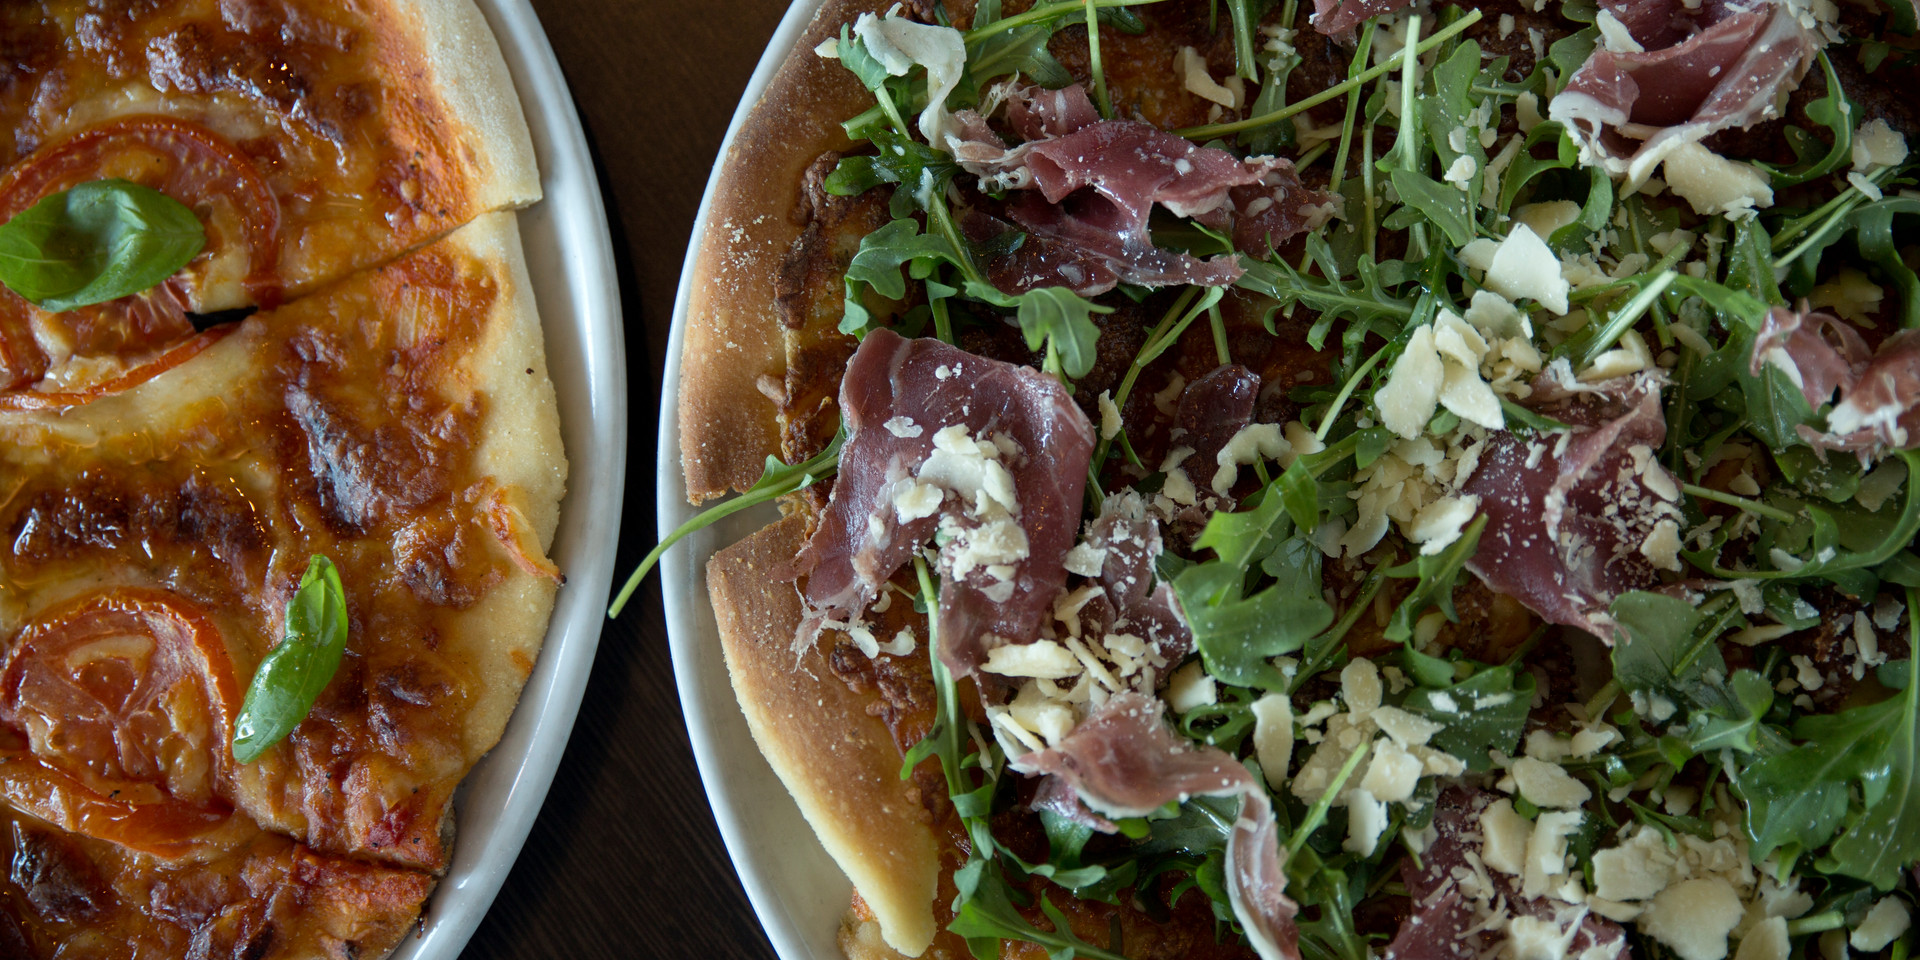 Proscuitto pizza and margherita